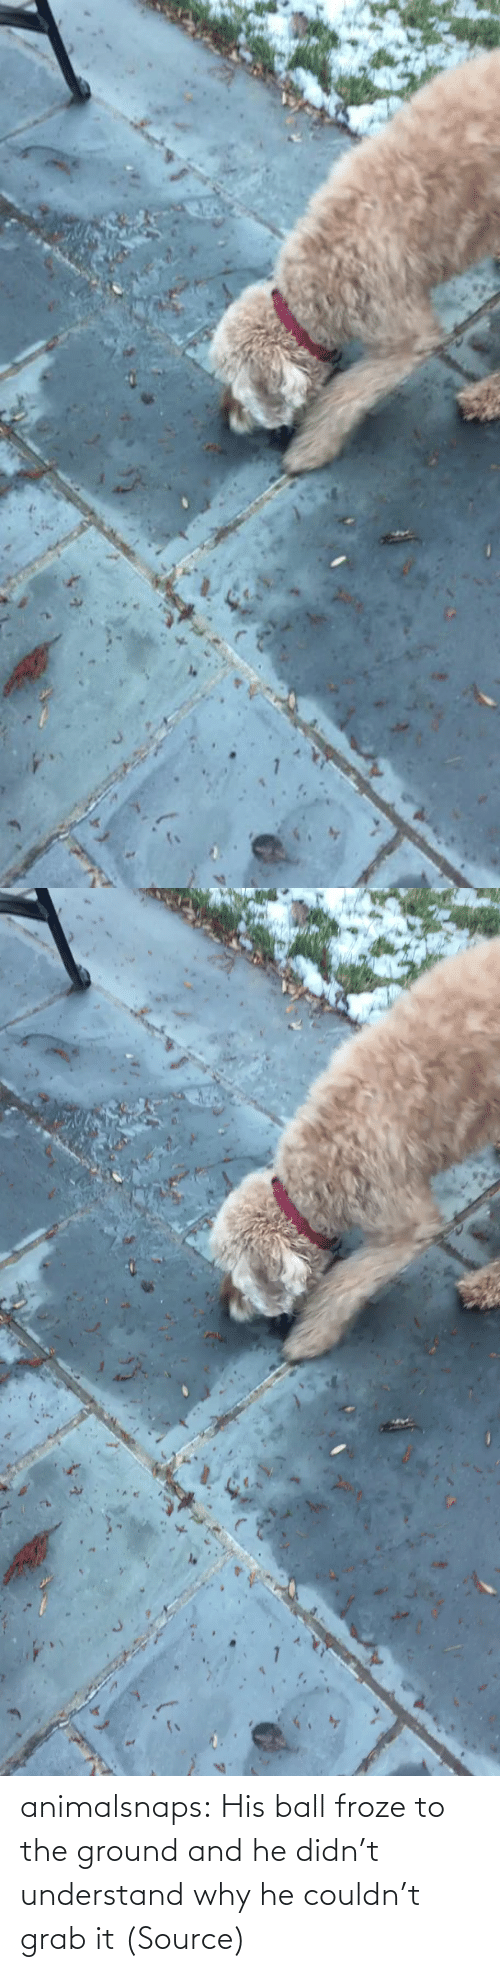 understand: animalsnaps:  His ball froze to the ground and he didn't understand why he couldn't grab it (Source)